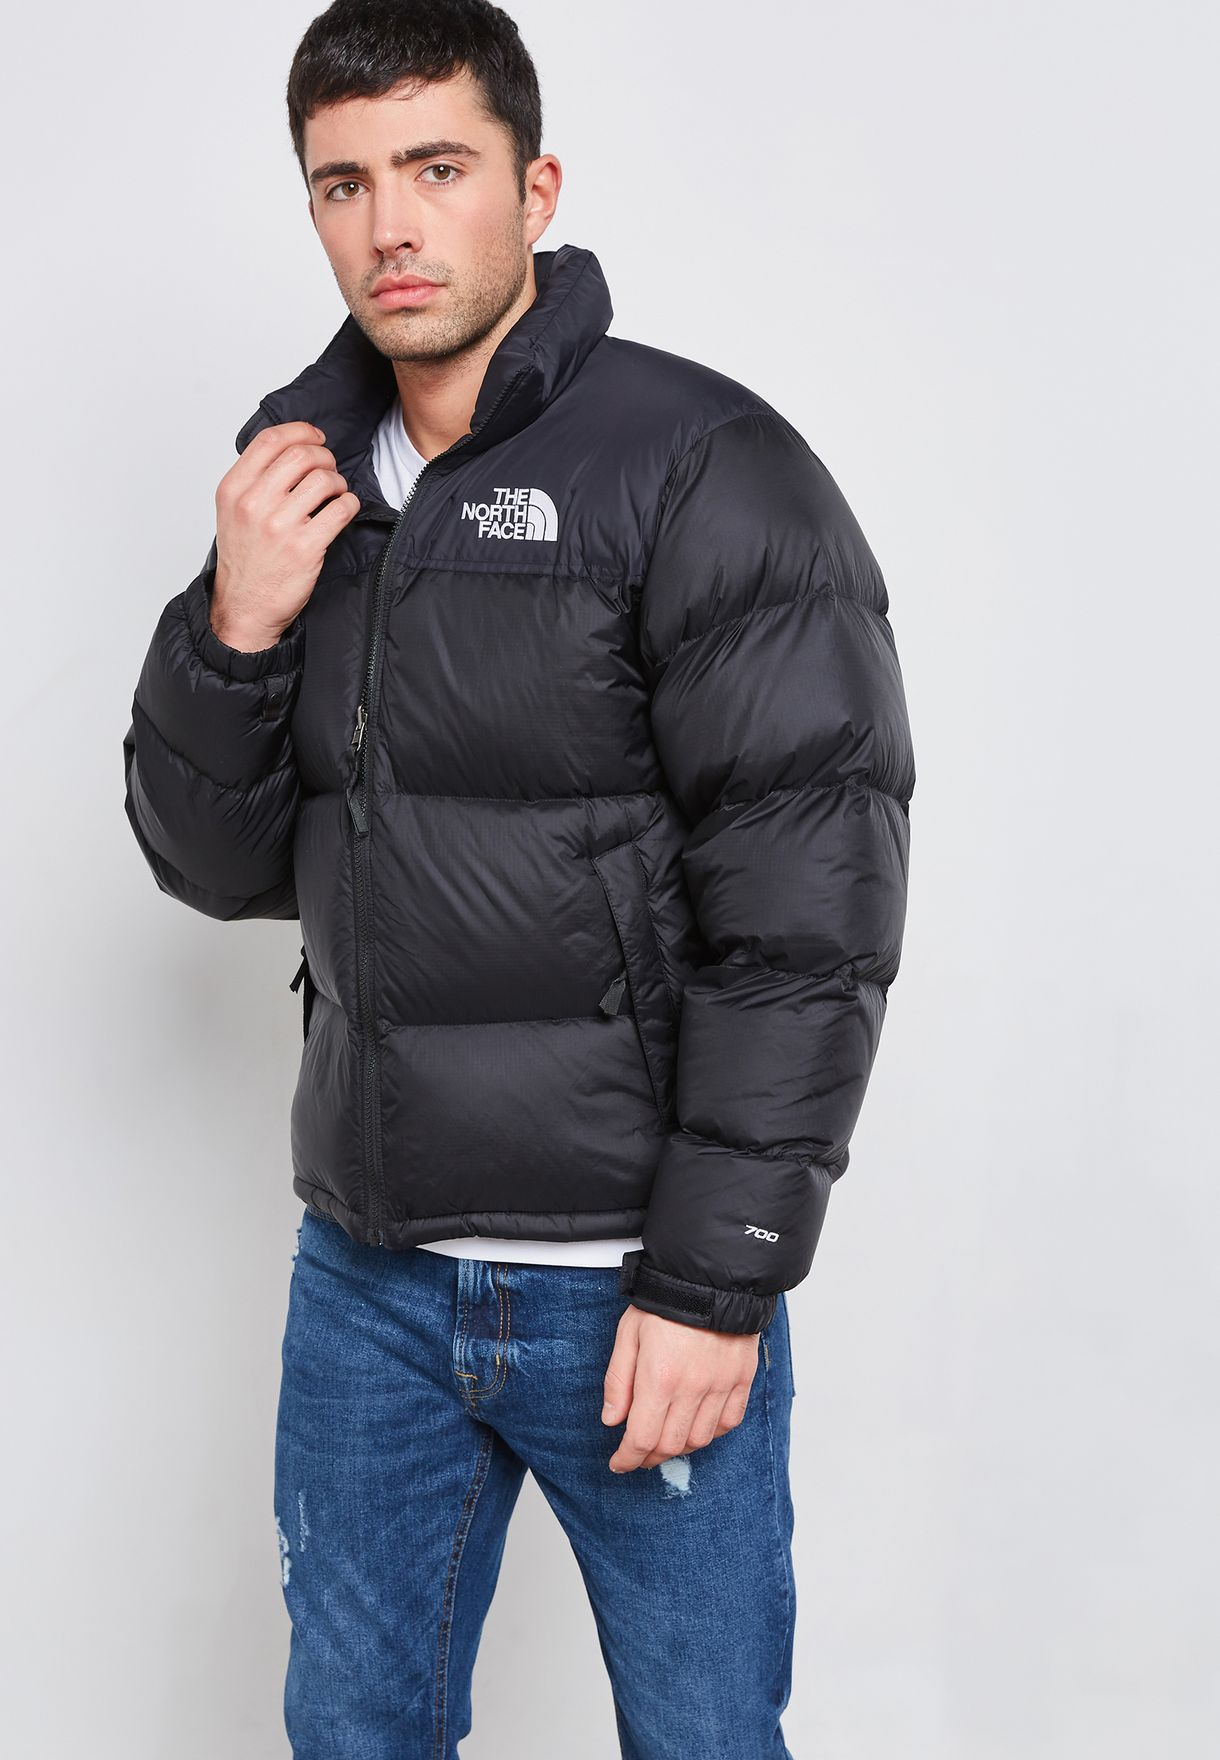 cb0b3de13e Shop The North Face black 1996 Retro Nuptse Jacket T93C8D-JK3 for ...